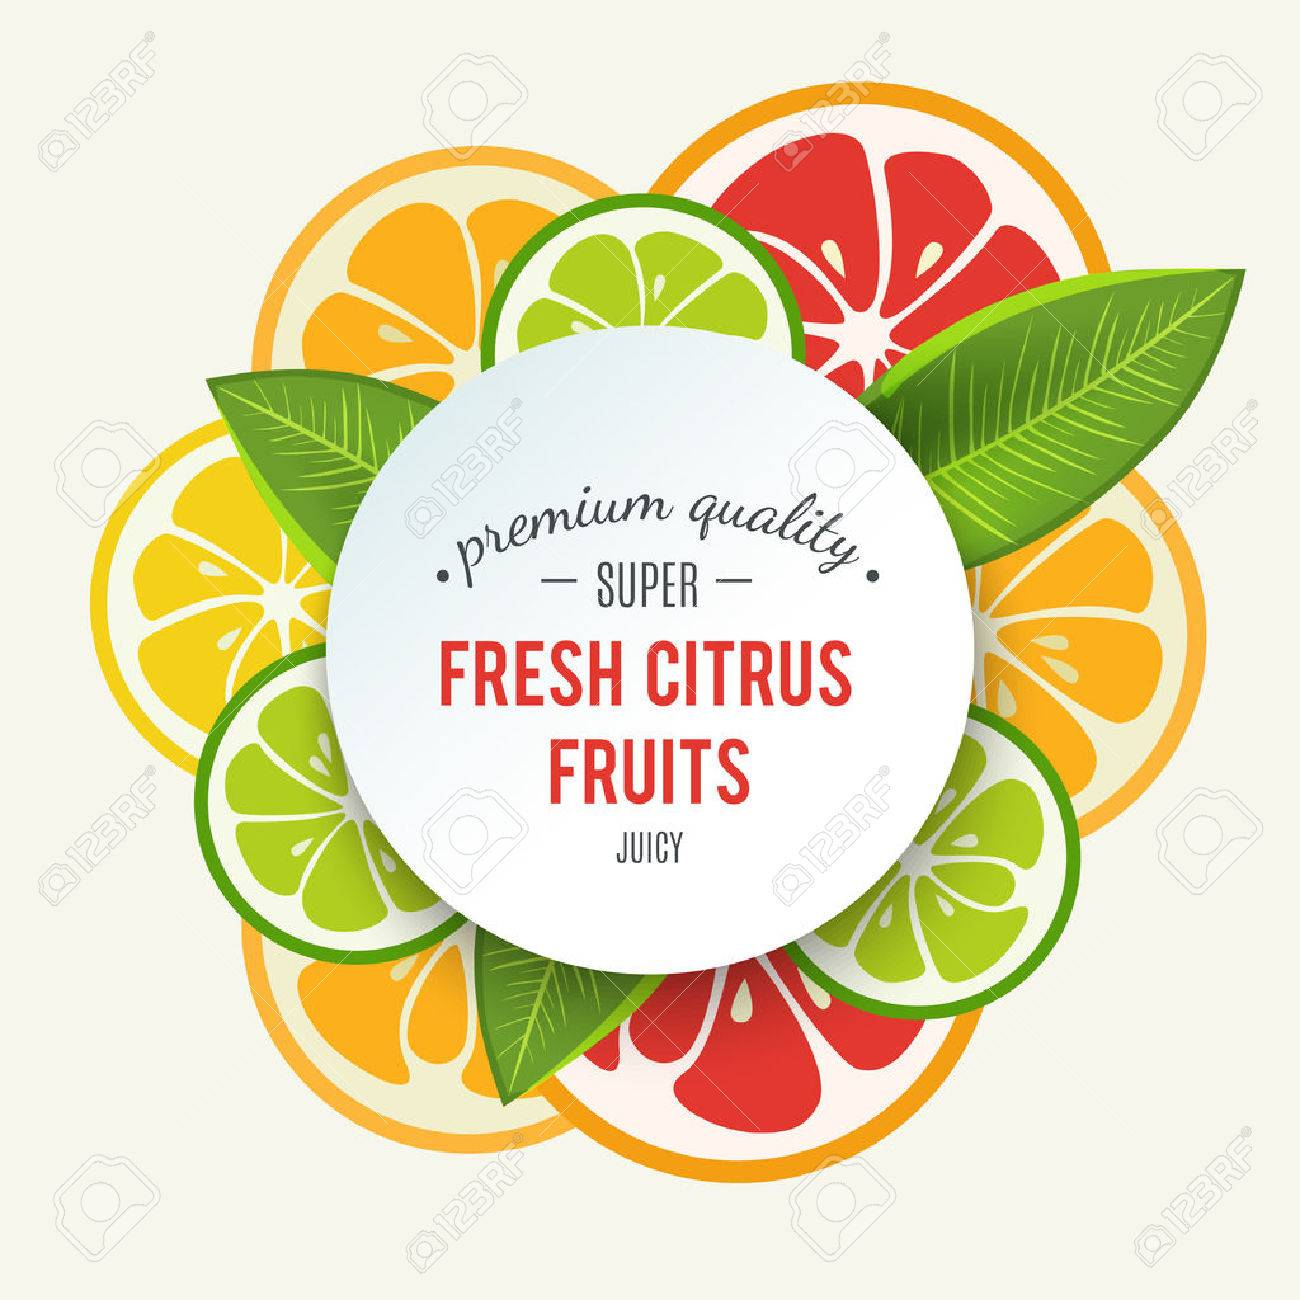 Banner with stylized citrus fruit and splashes. Grapefruit, lime, lemon and orange. Citrus mix isolated on white background can be used for cafe menu design. Bright stylish juicy icon design. Vector - 51849871